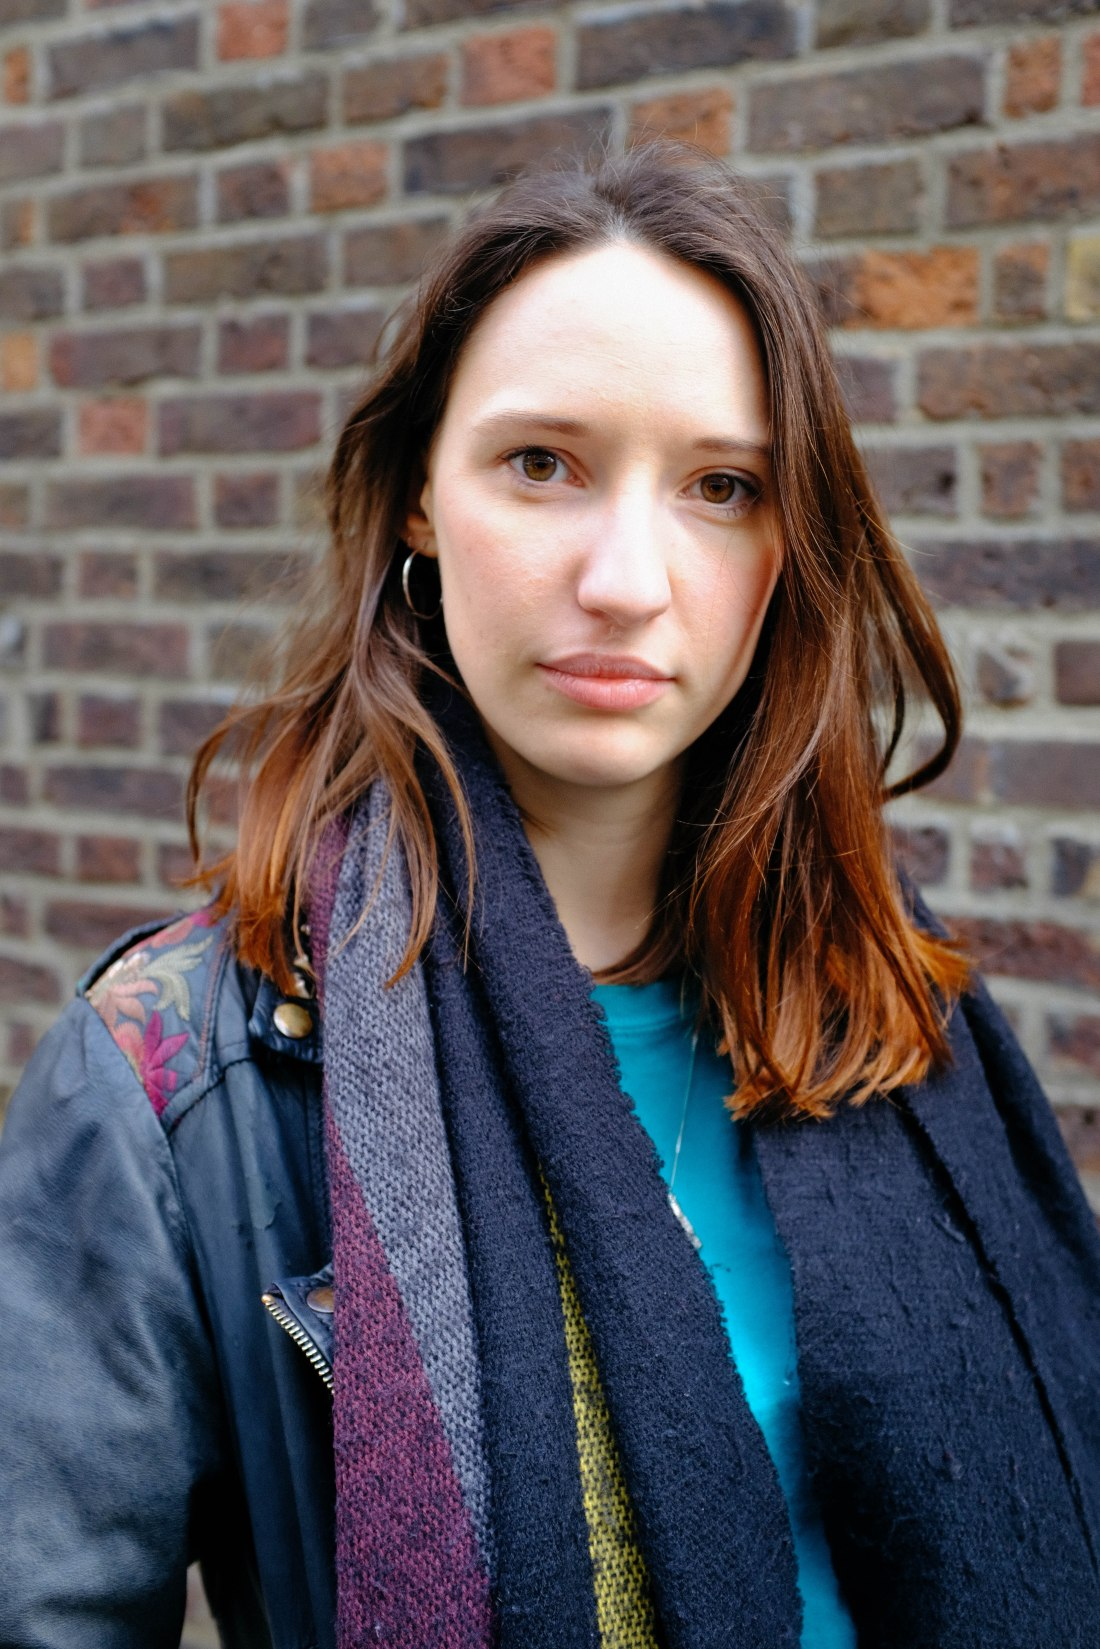 EMILY STOTT ;Portrait ; London, UK ; 10 APRIL ; Credit: Helen Murray ;